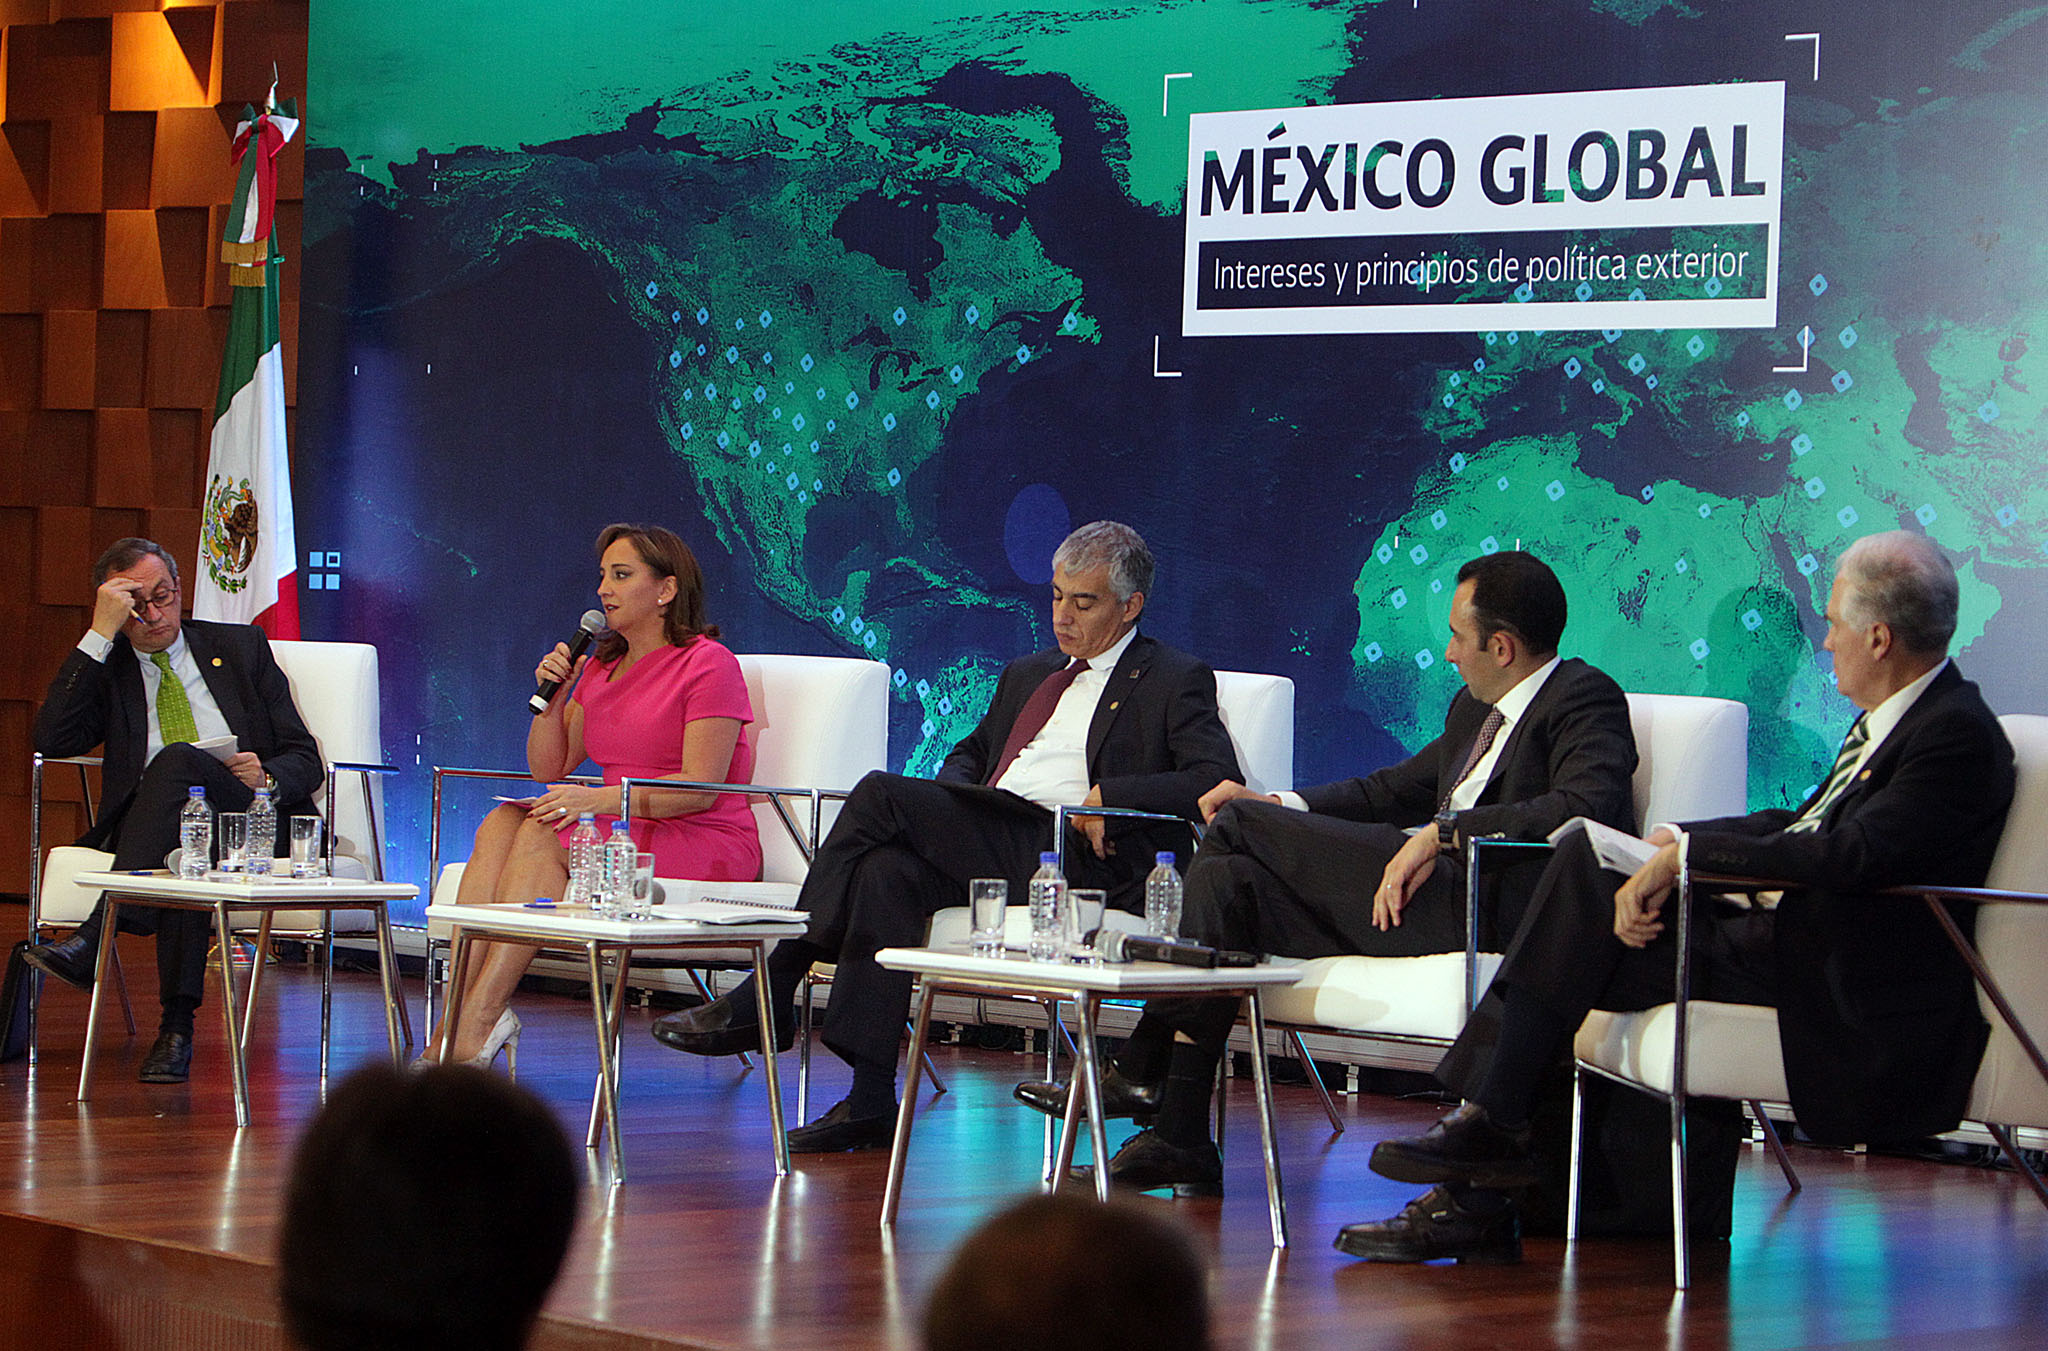 /cms/uploads/image/file/140517/Ceremonia_de_Clausura_del_Seminario_Internacional_M_xico_Global_03.jpg